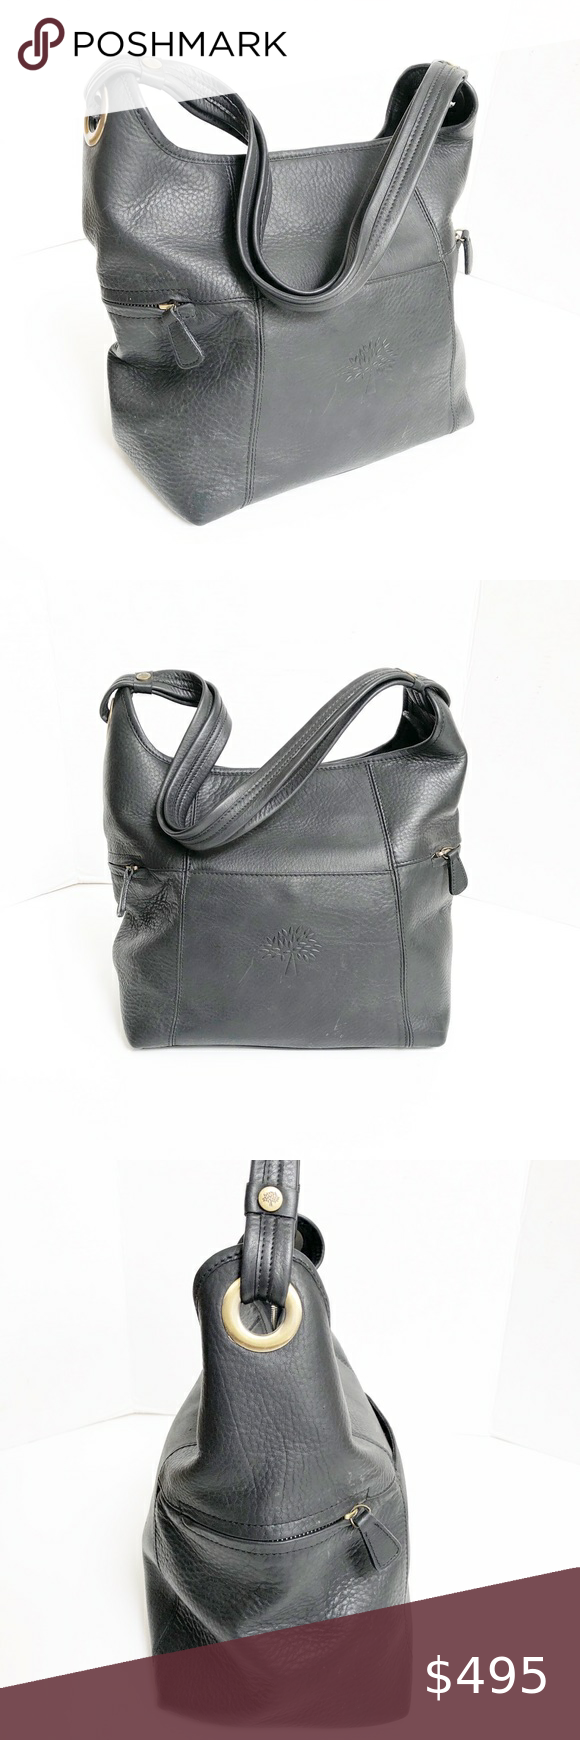 Mulberry Black Hobo Leather Bag Mulberry Black Hobo Leather Bag. In excellent used condition EUC. See photos for wear. Very clean inside lining. Minimal wear on the leather Mulberry Bags Hobos #mulberrybag